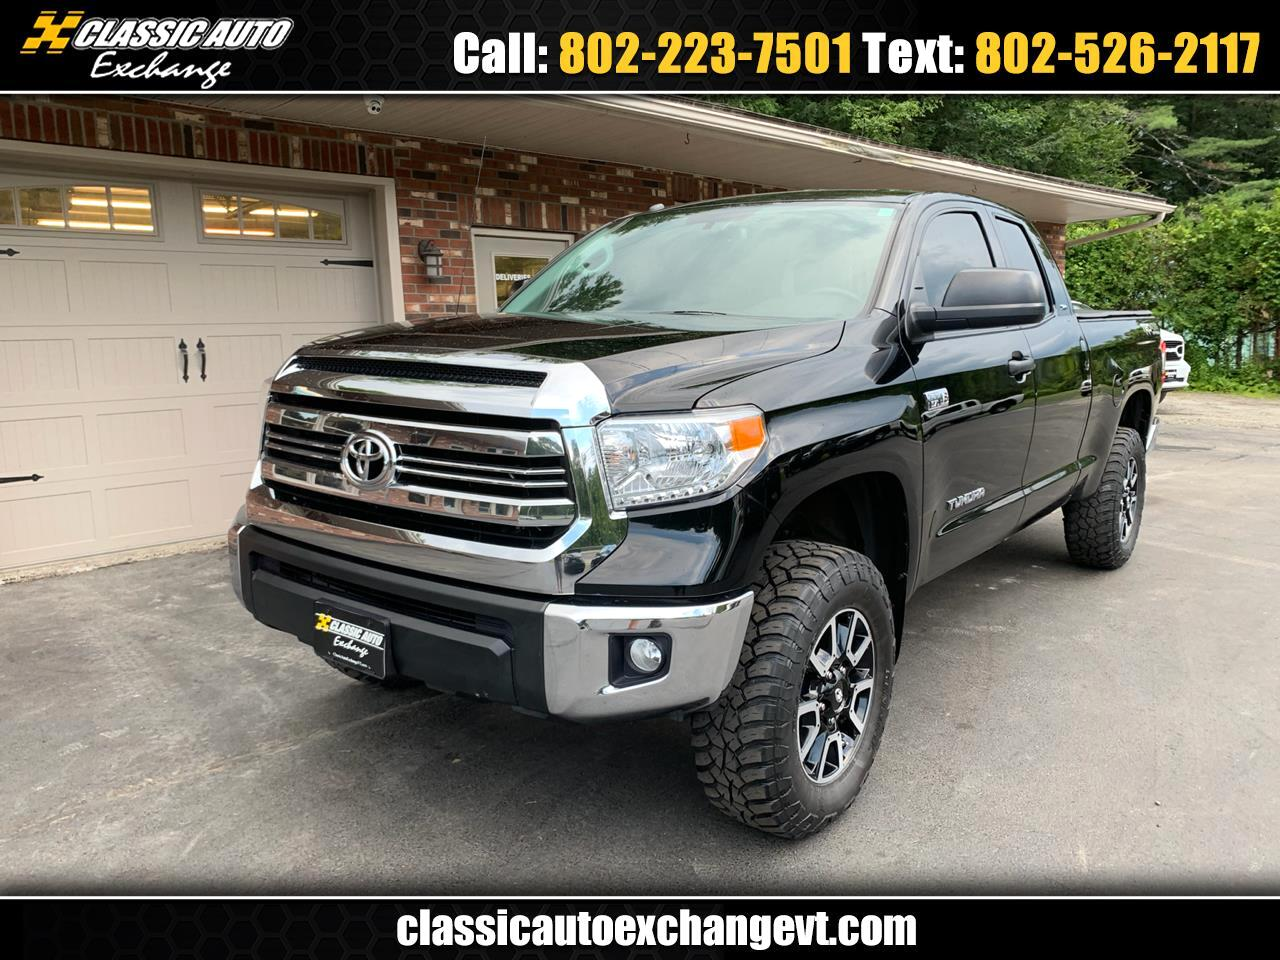 2017 Toyota Tundra SR5 5.7 V8 DOUBLE CAB TRD OFF ROAD 4WD